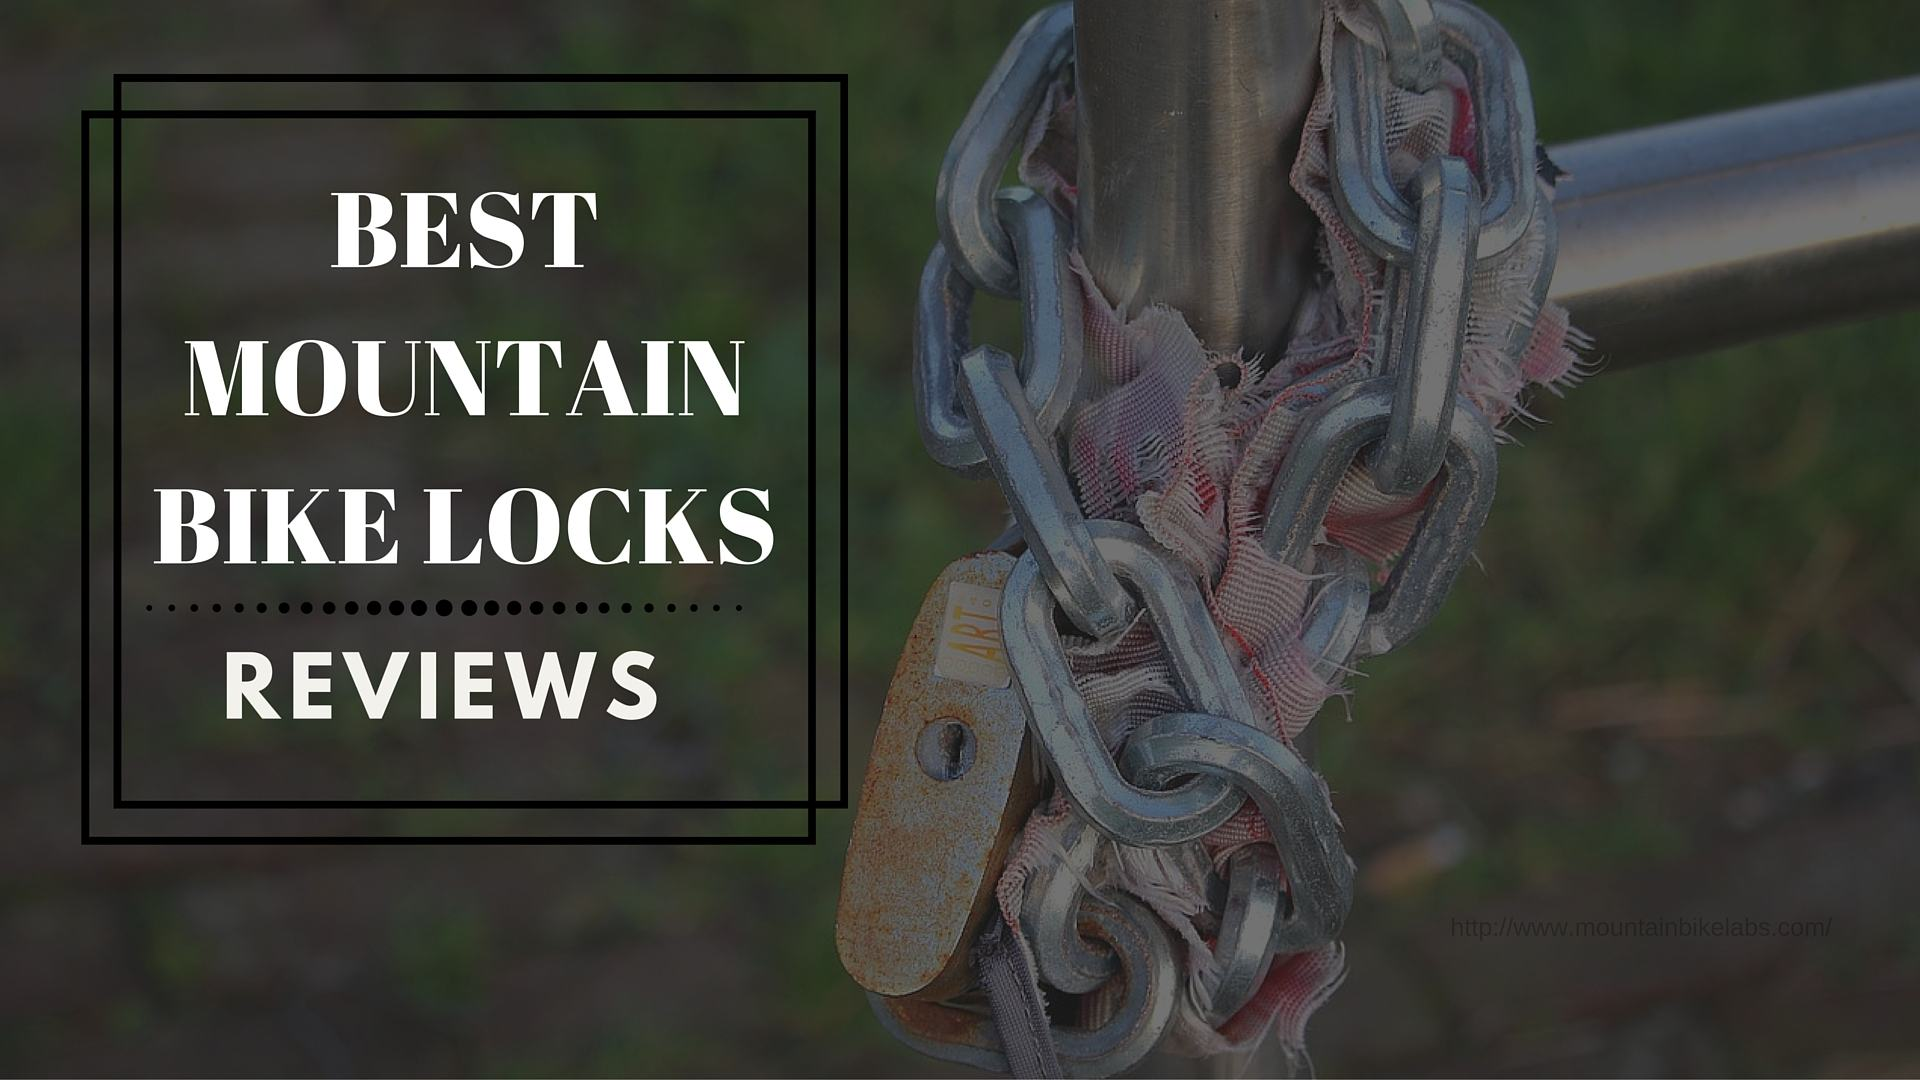 Best Mountain Bike Locks's